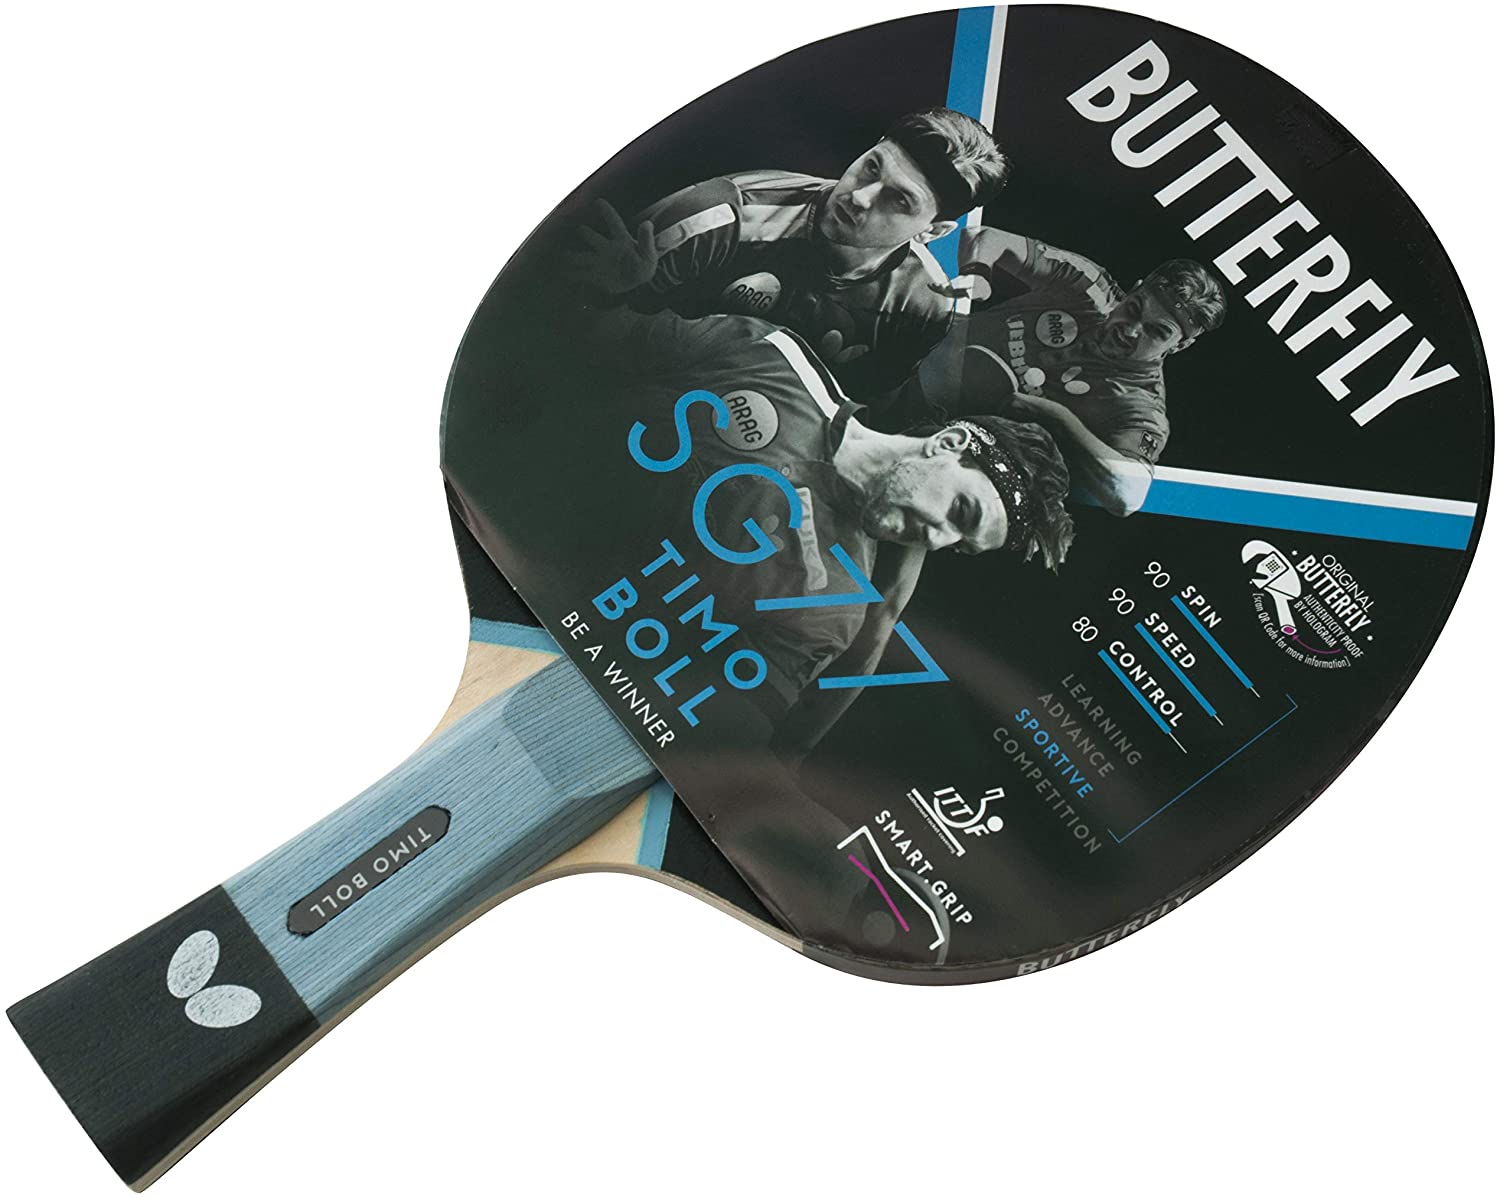 Butterfly SG77 Ping-Pong, Unisex Adulto, Negro/Rojo, tamaño único